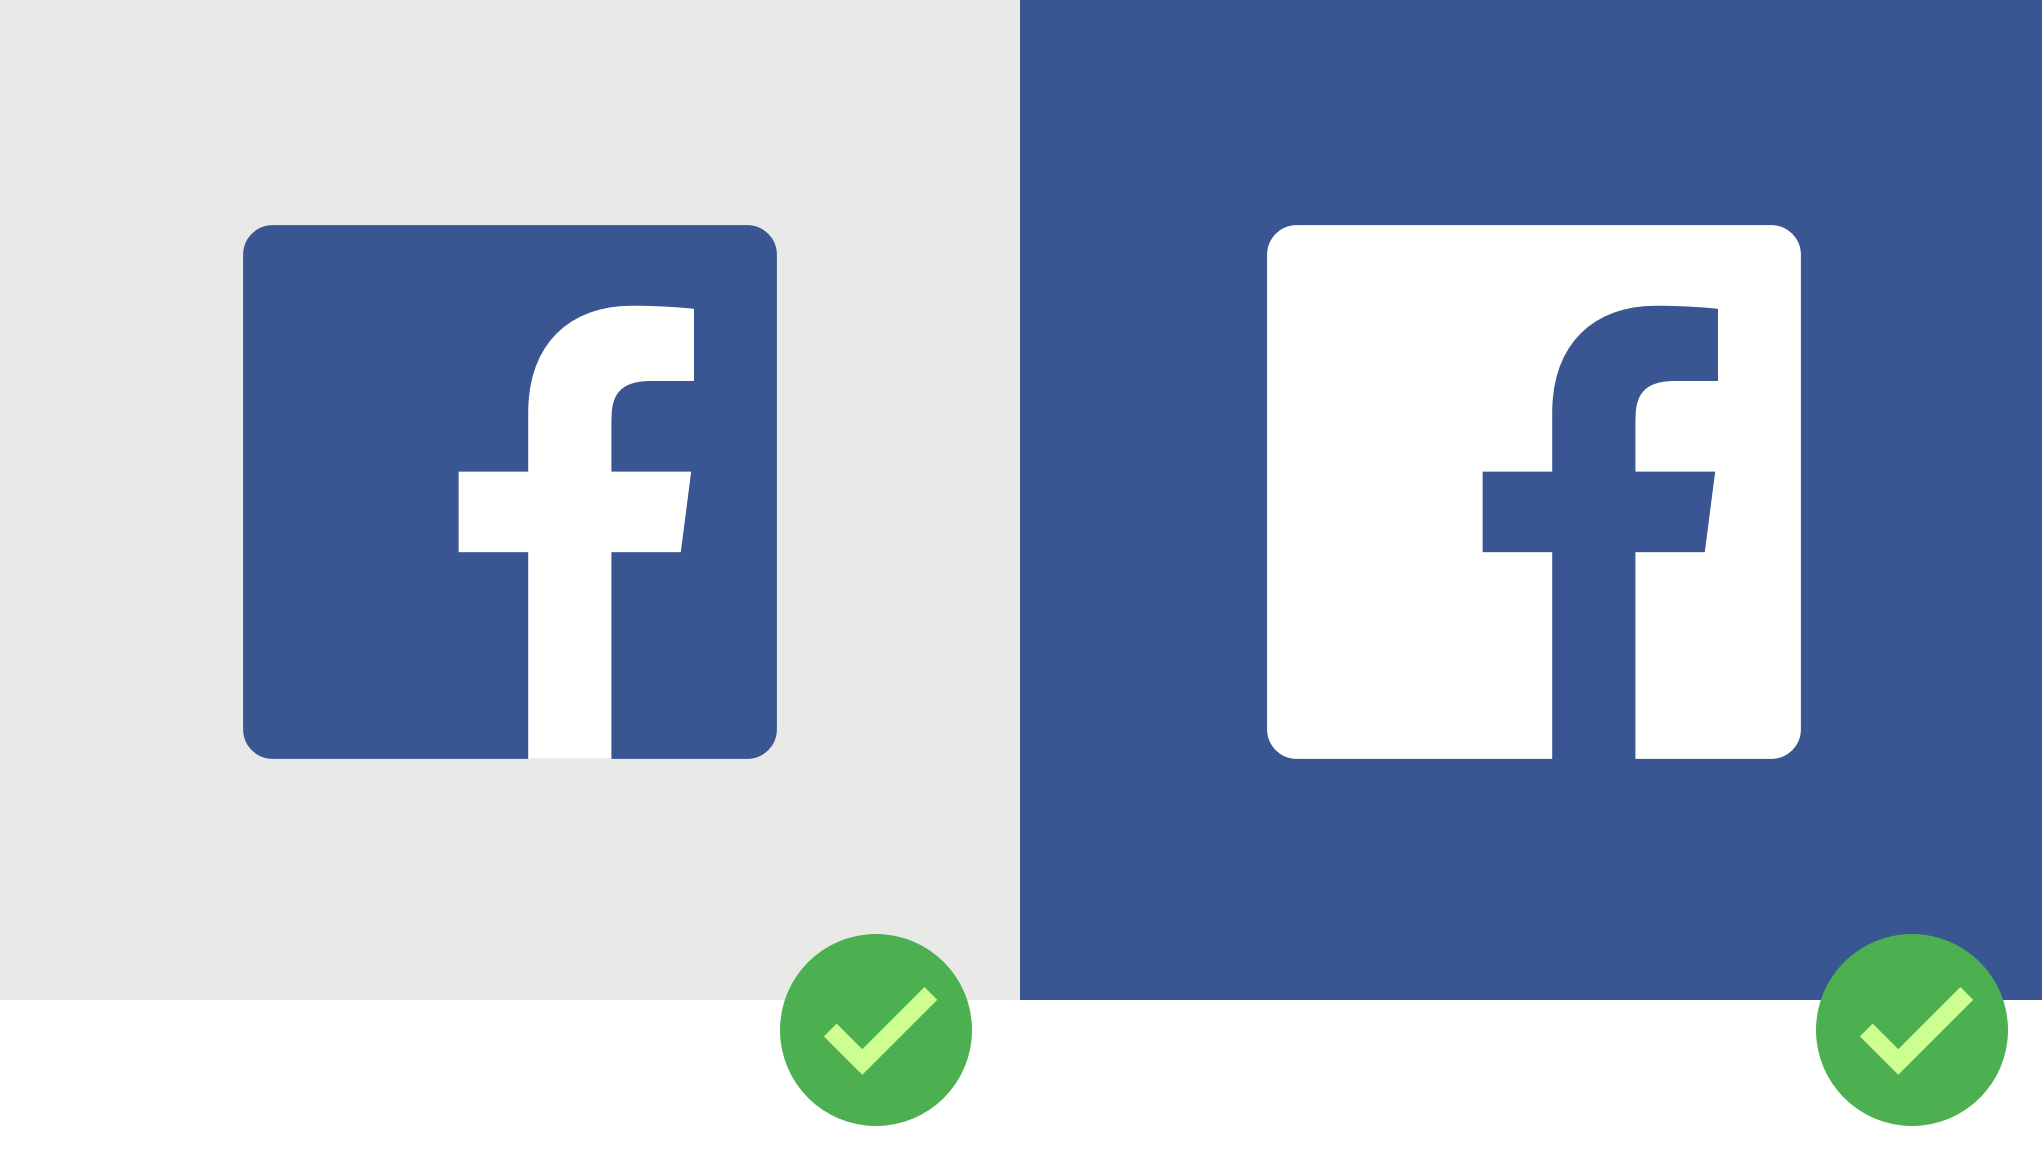 Facebook Icon - free download, PNG and vector